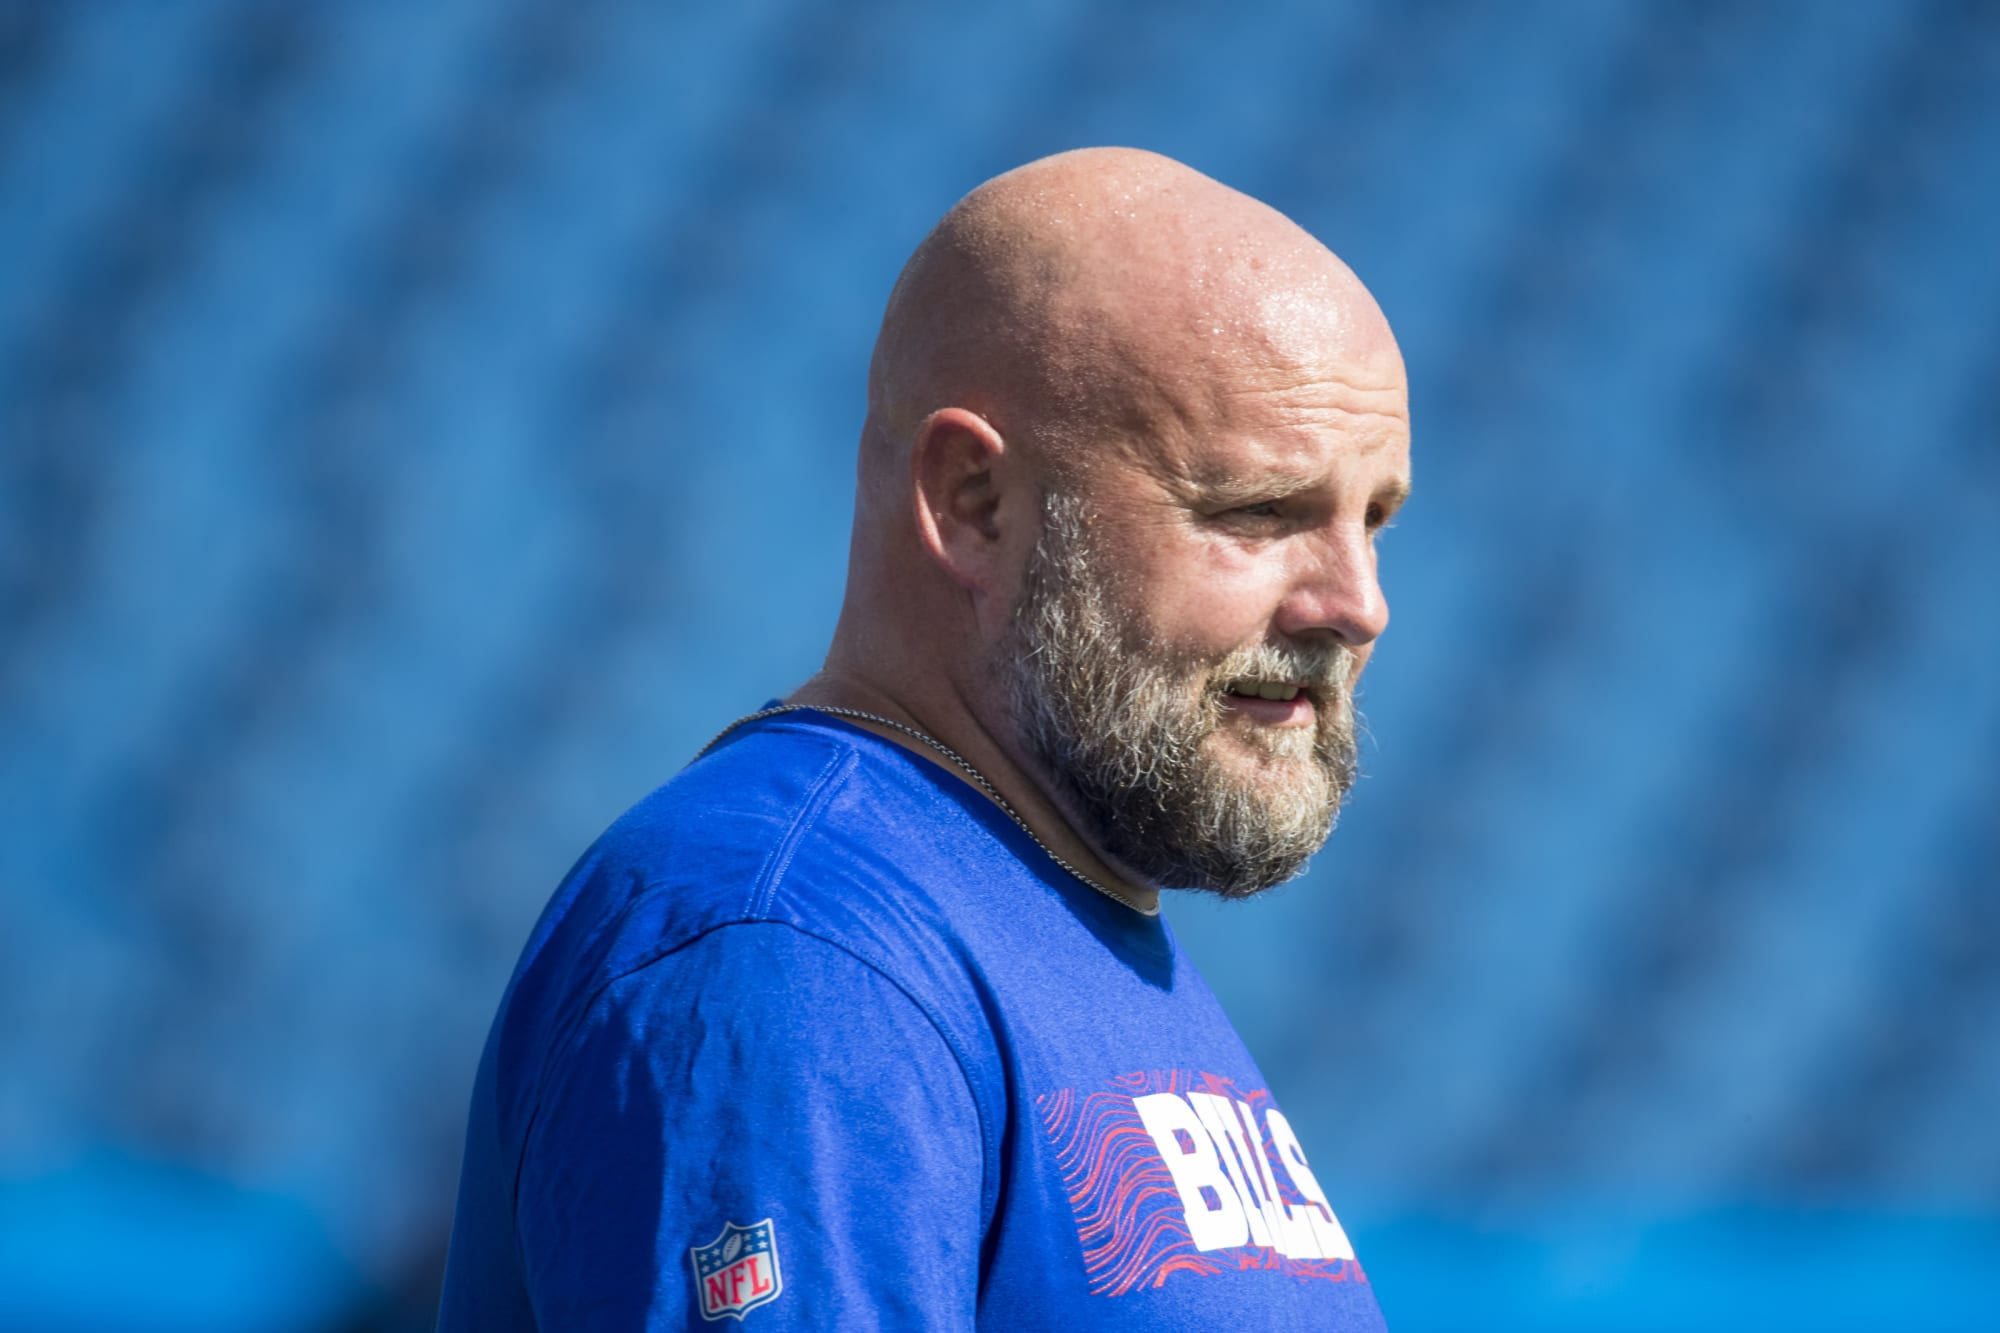 LA Chargers: Pros and cons of hiring Brian Daboll as head coach